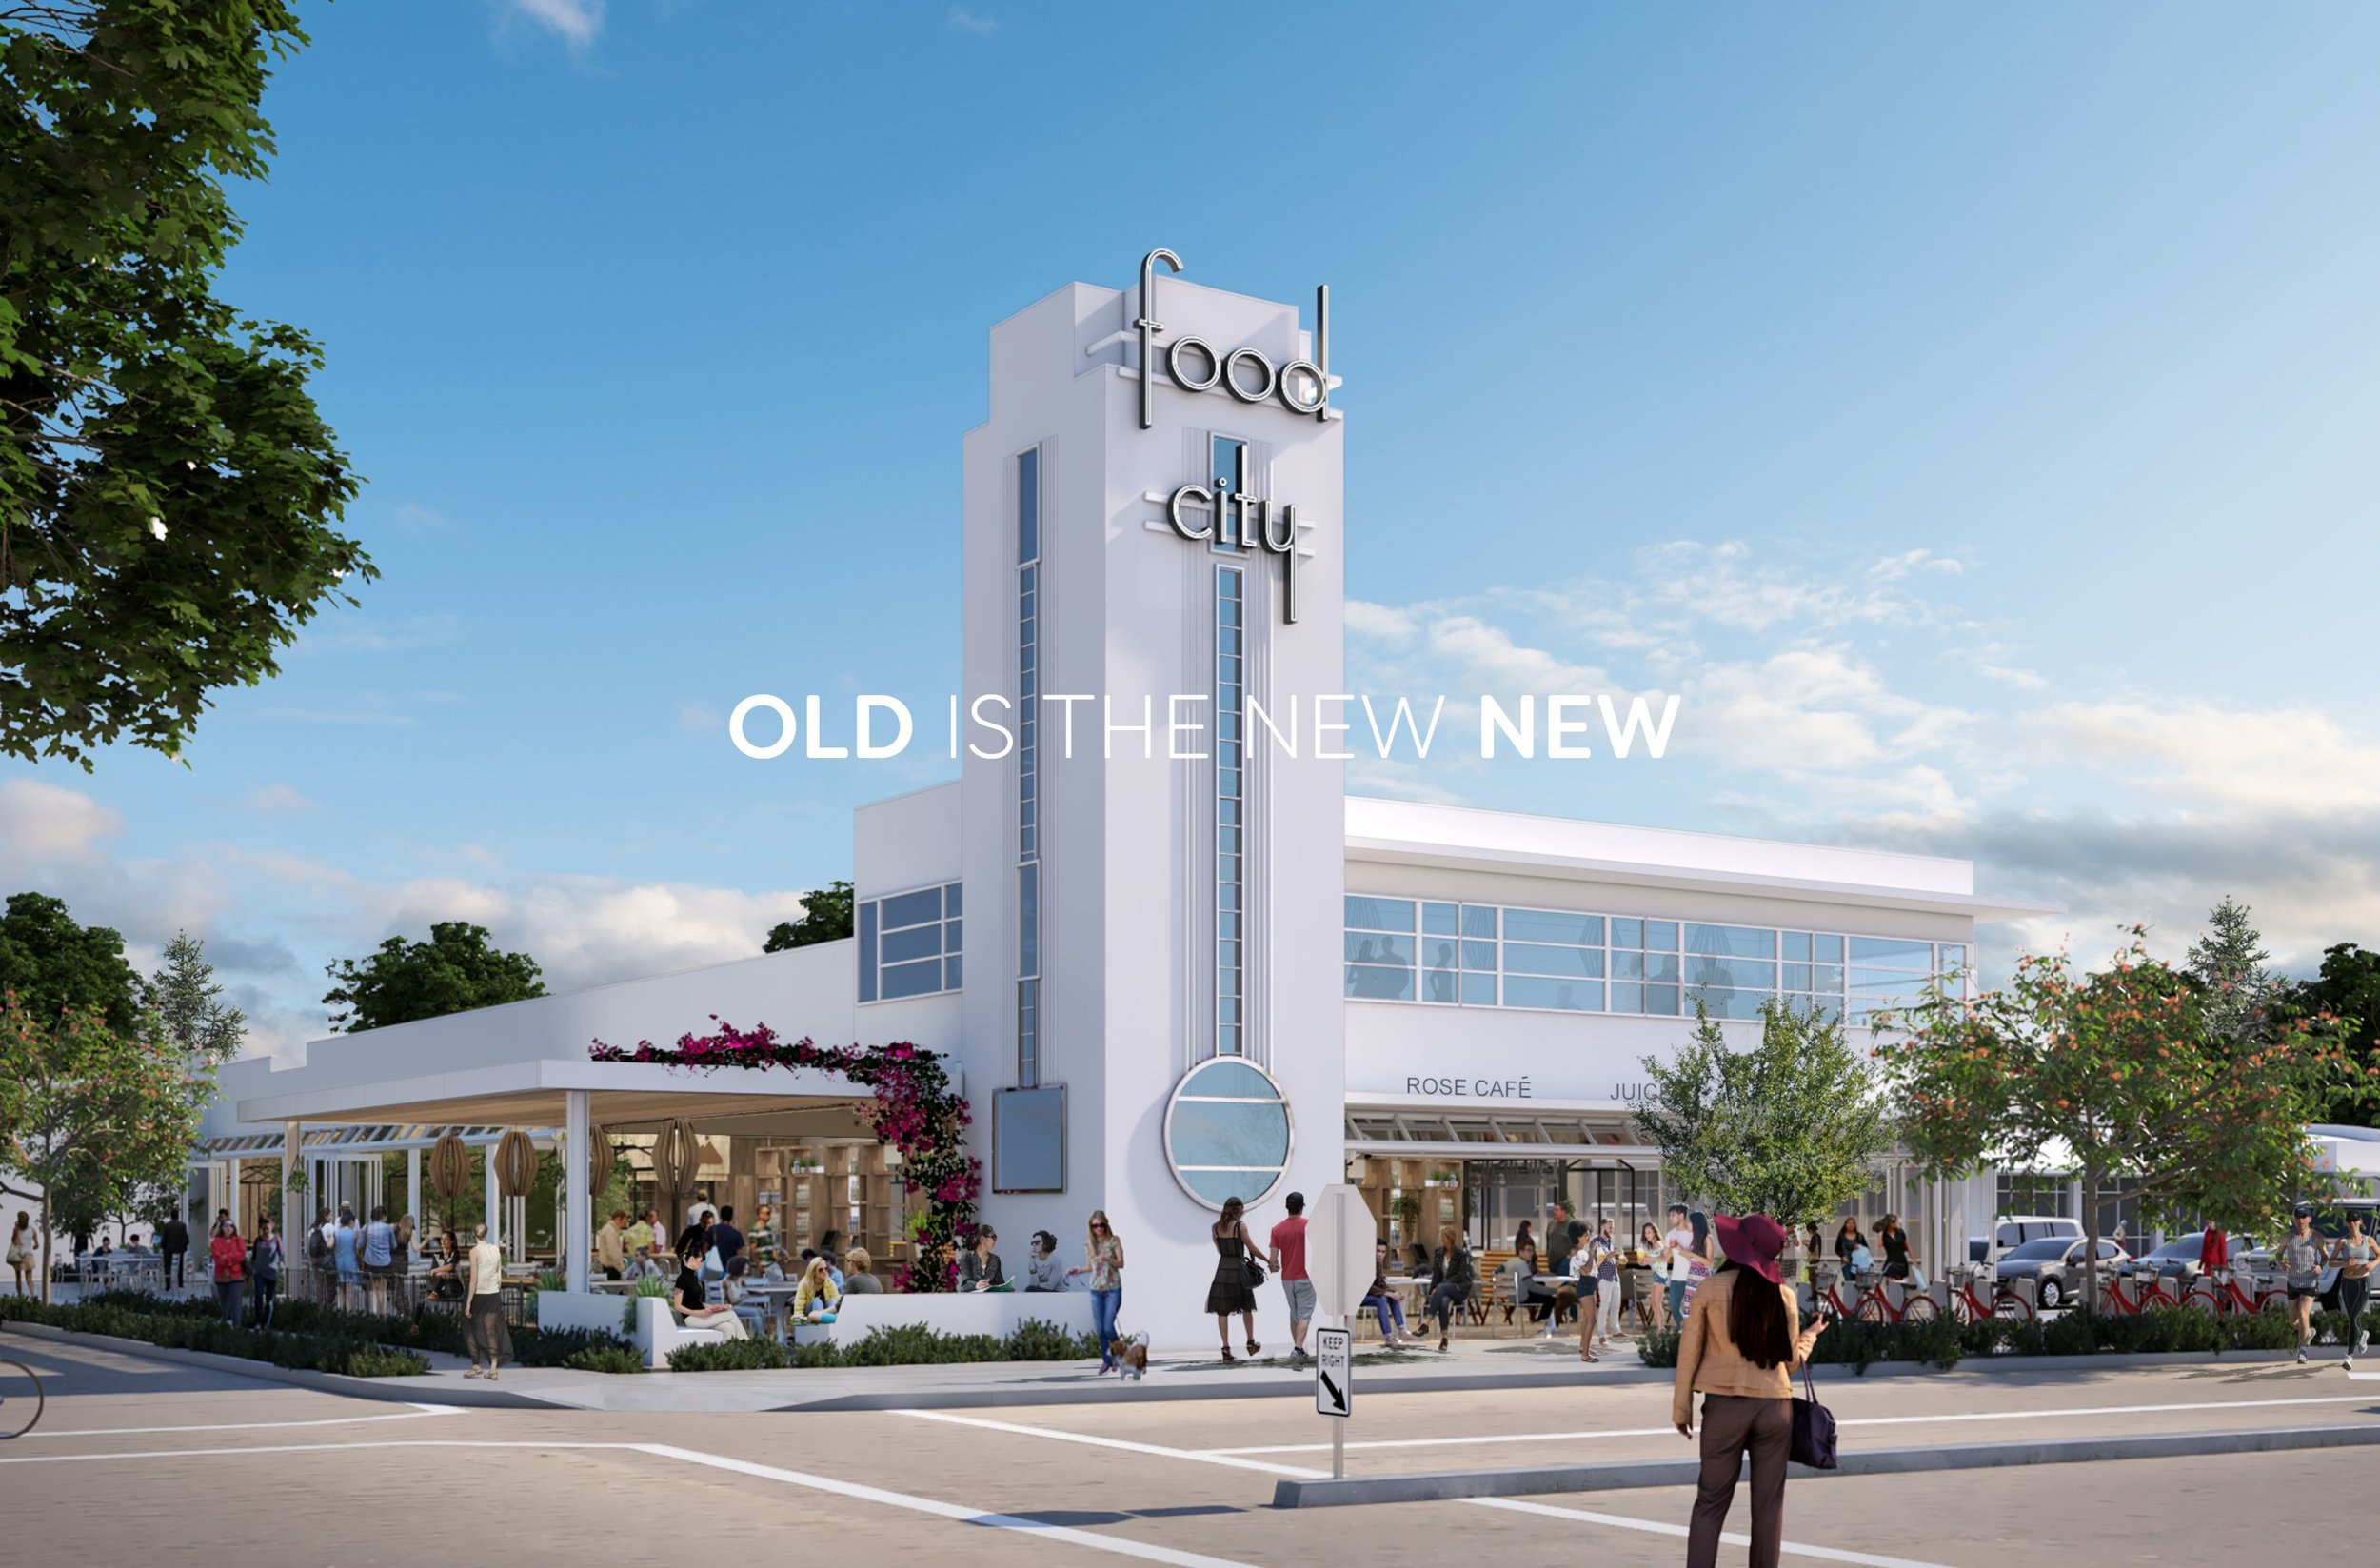 Conceptual Design of Historic Food City Building at the intersection at Old Sonoma Road and Jefferson St in Napa, CA.  This image provided as a courtesy by Brooks-Street LLC and Grub LLC.